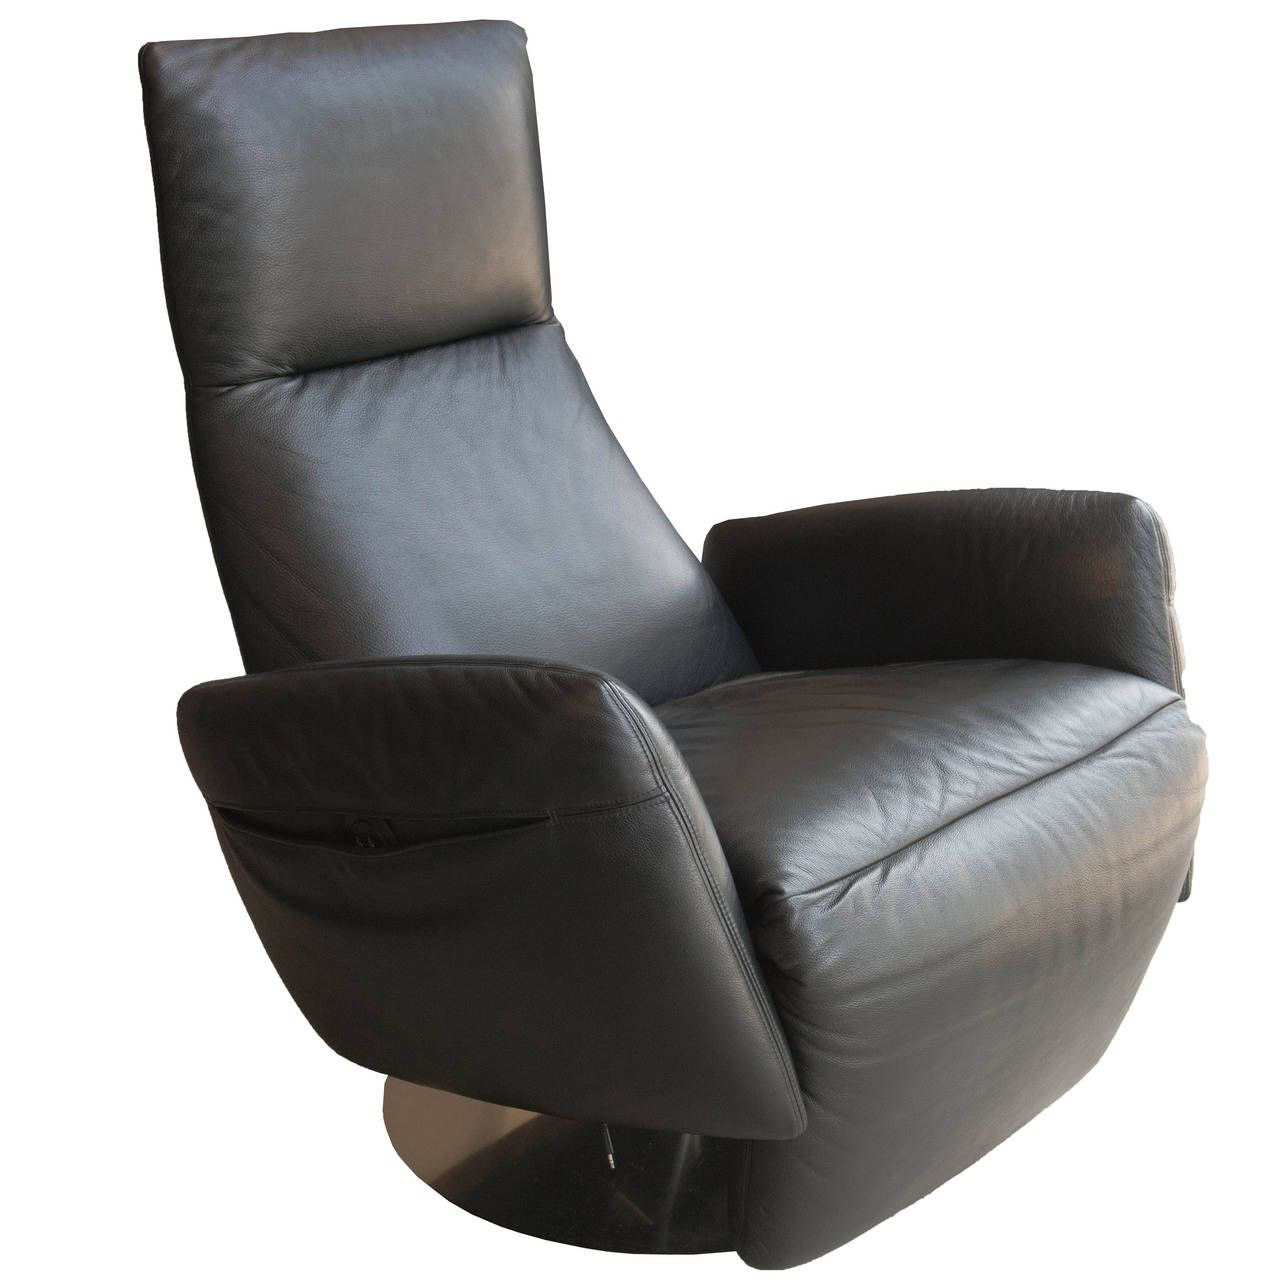 Poltrona Recliner Pin By Jerry Jacobs Design On Seating Recliner Arm Chairs